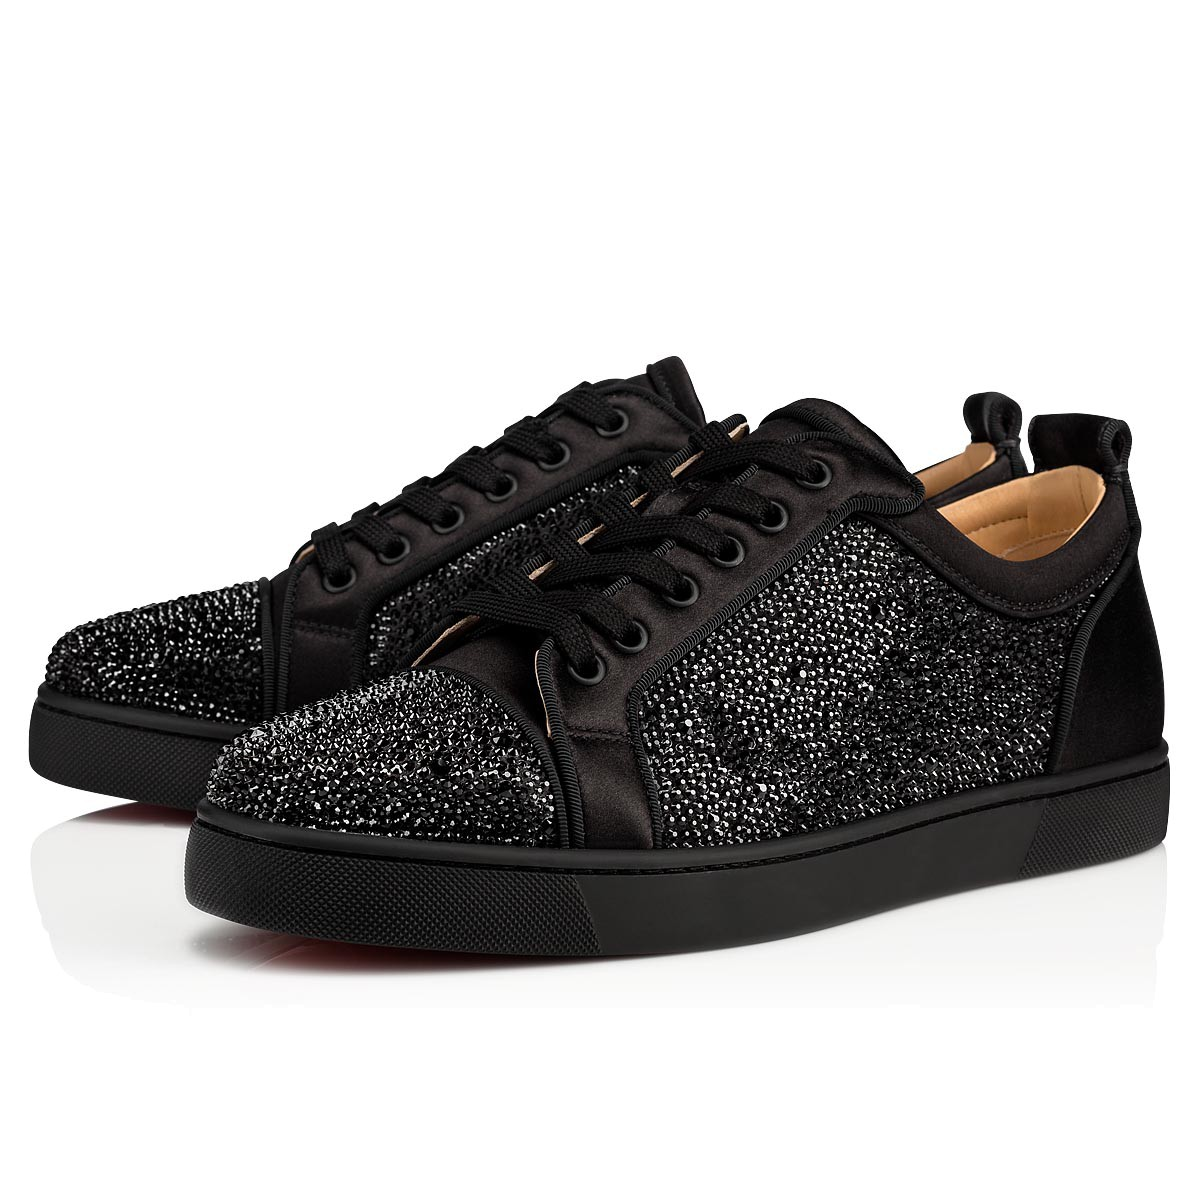 low priced ed2f0 5b3df Louis Junior Strass Black Strass - Men Shoes - Christian Louboutin